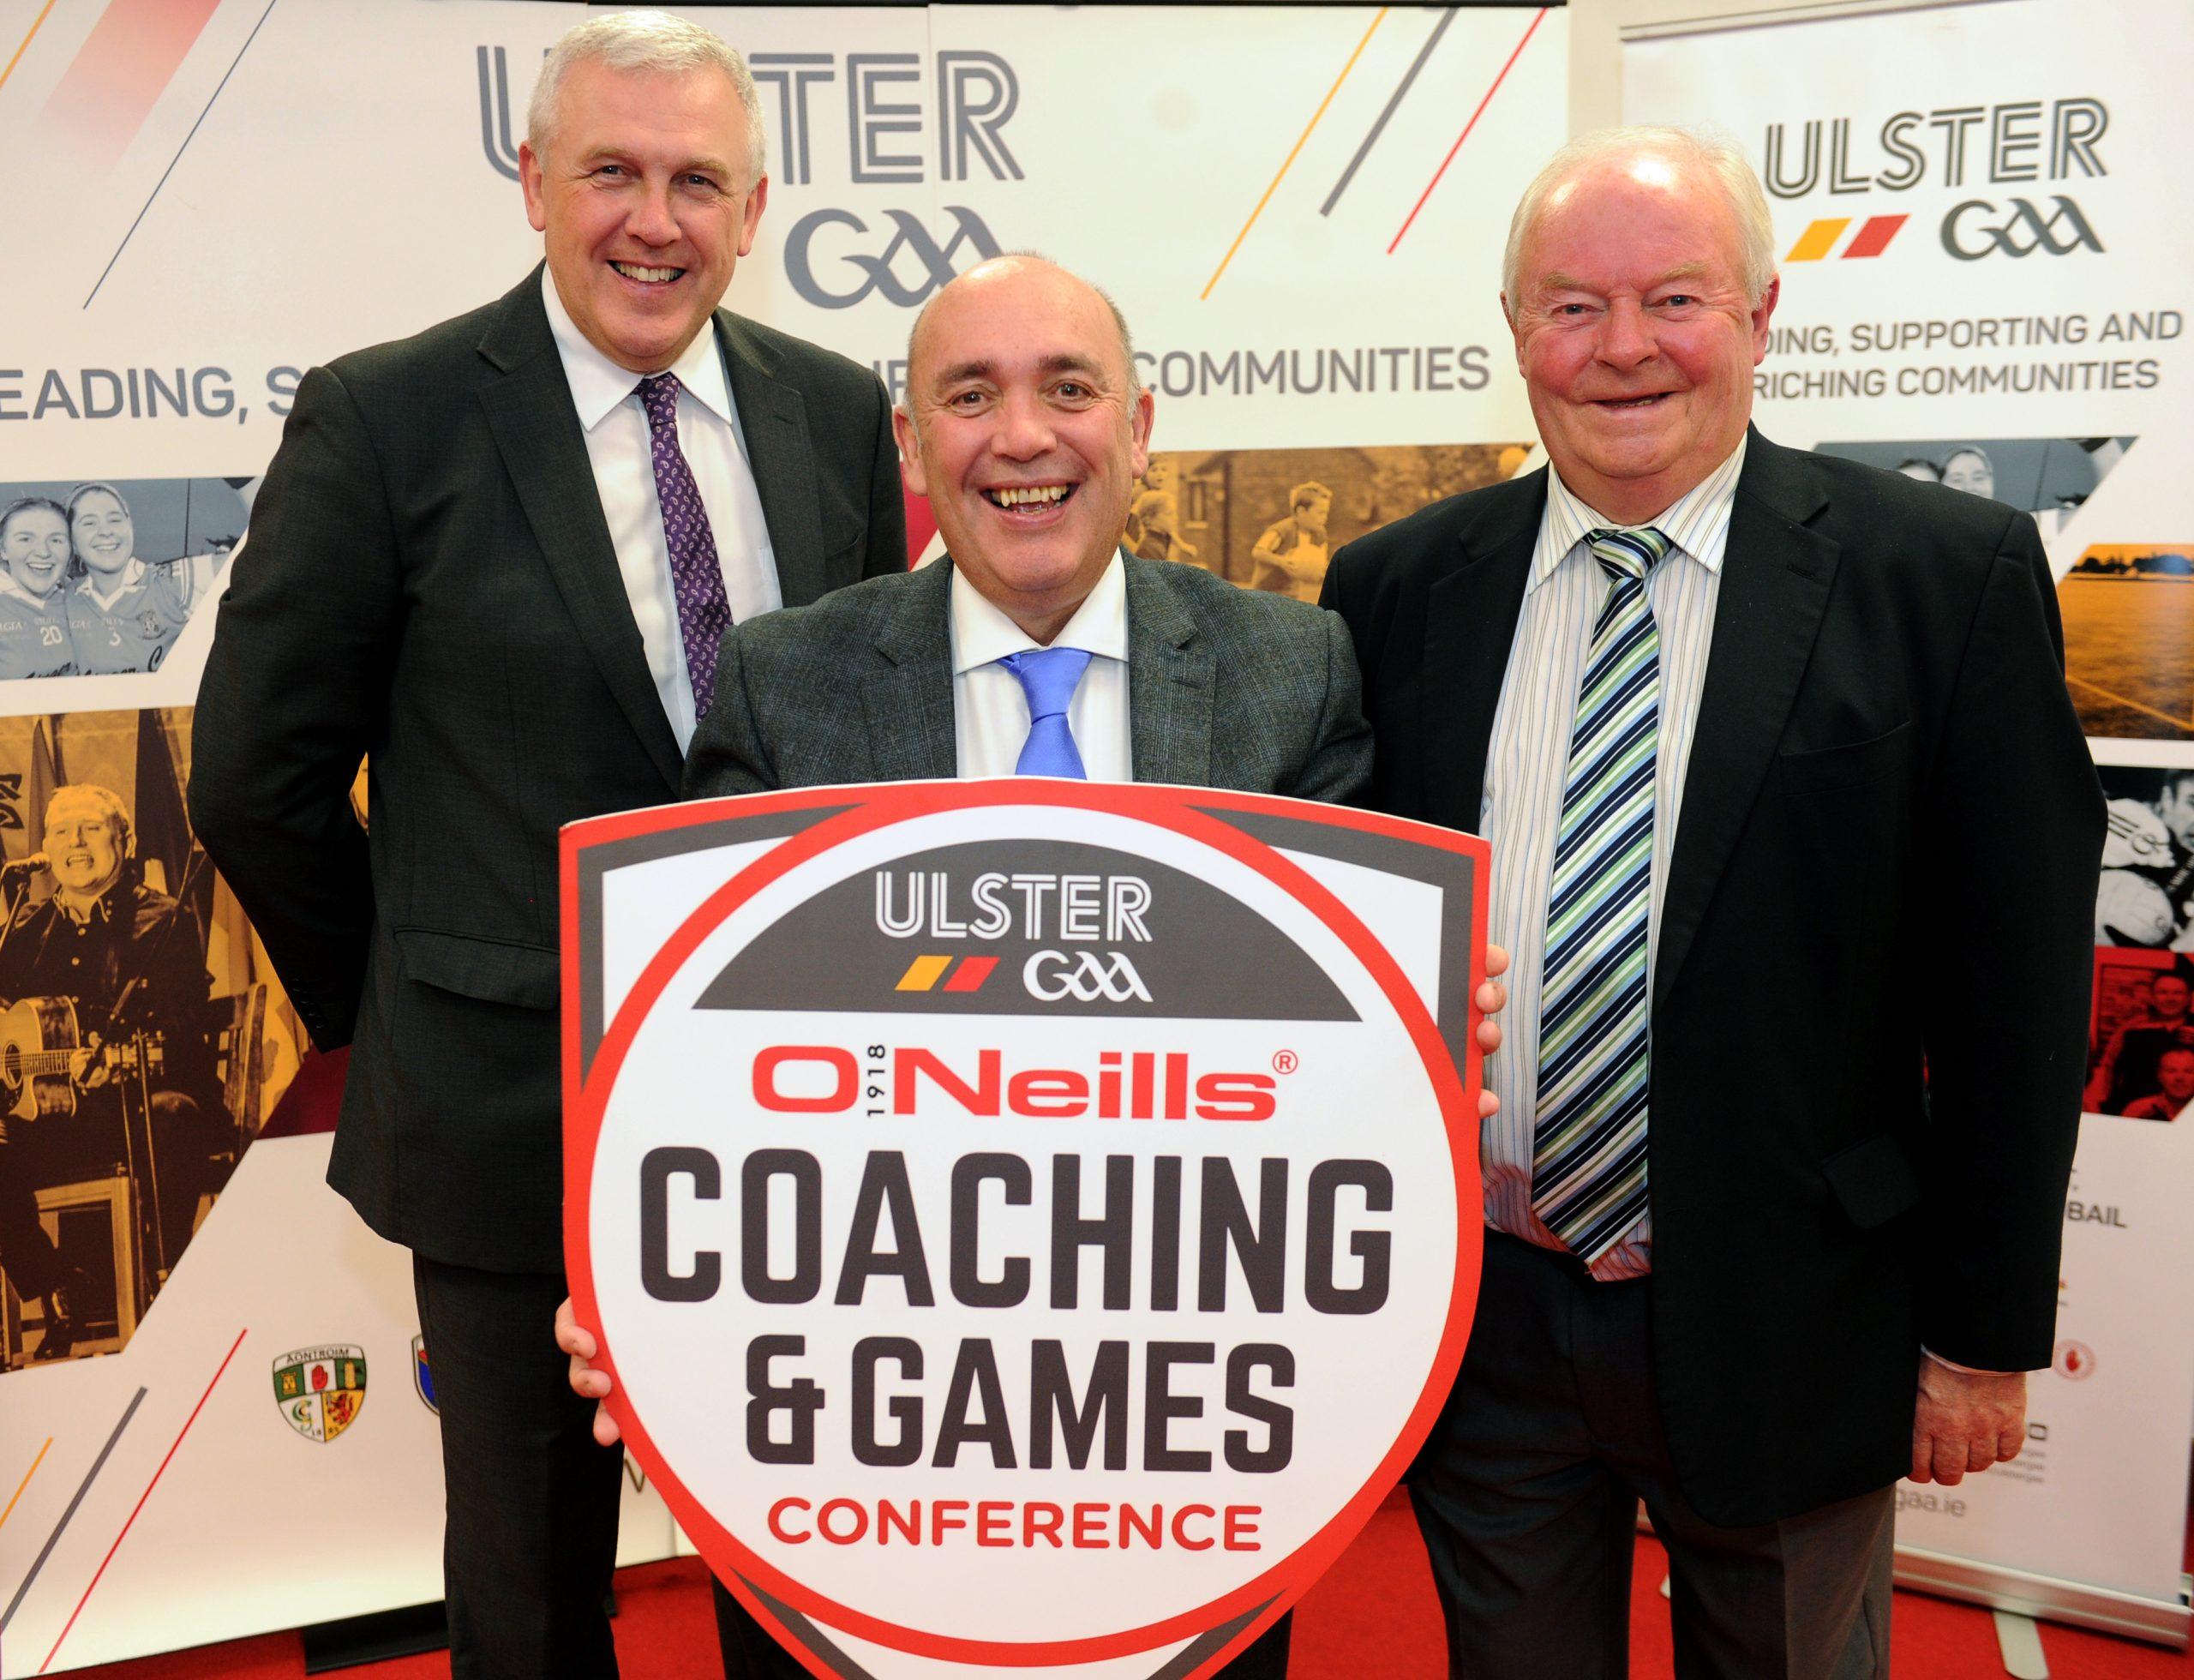 O'Neill's Ulster GAA Coaching Conference focuses on 'Warriors and Winners'